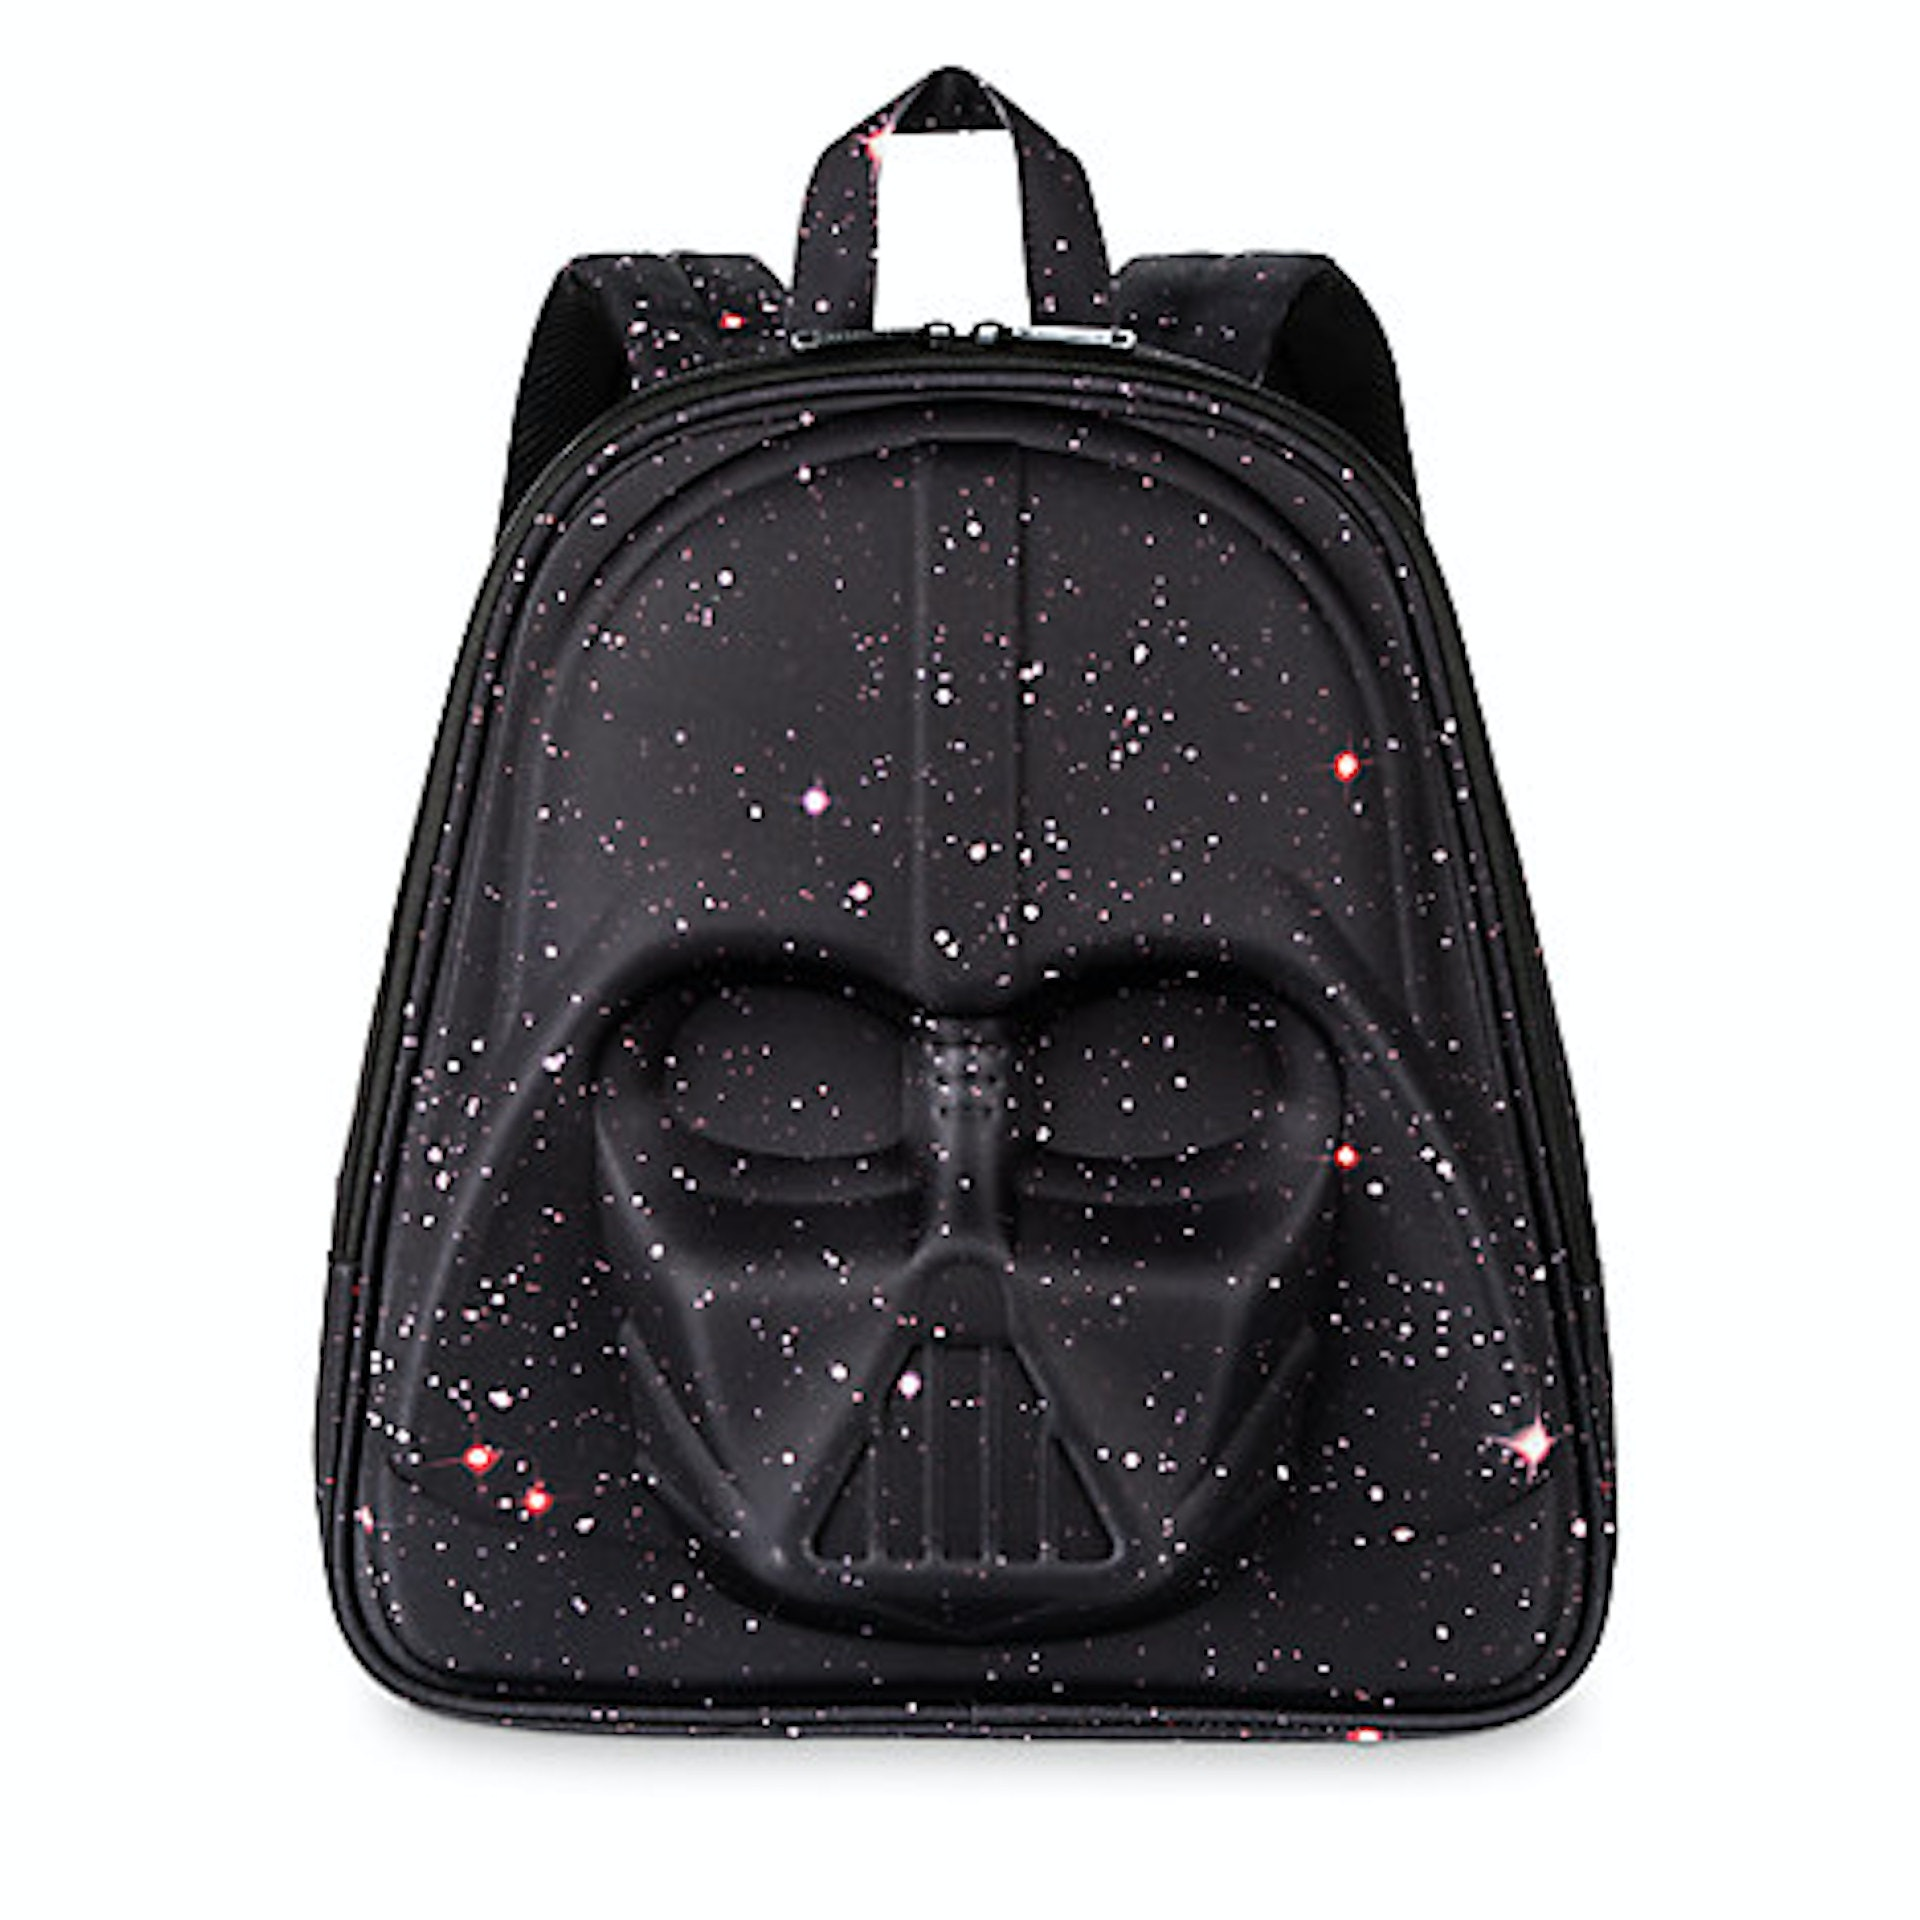 This backpack that sure looks a lot like Luke Skywalker's dad